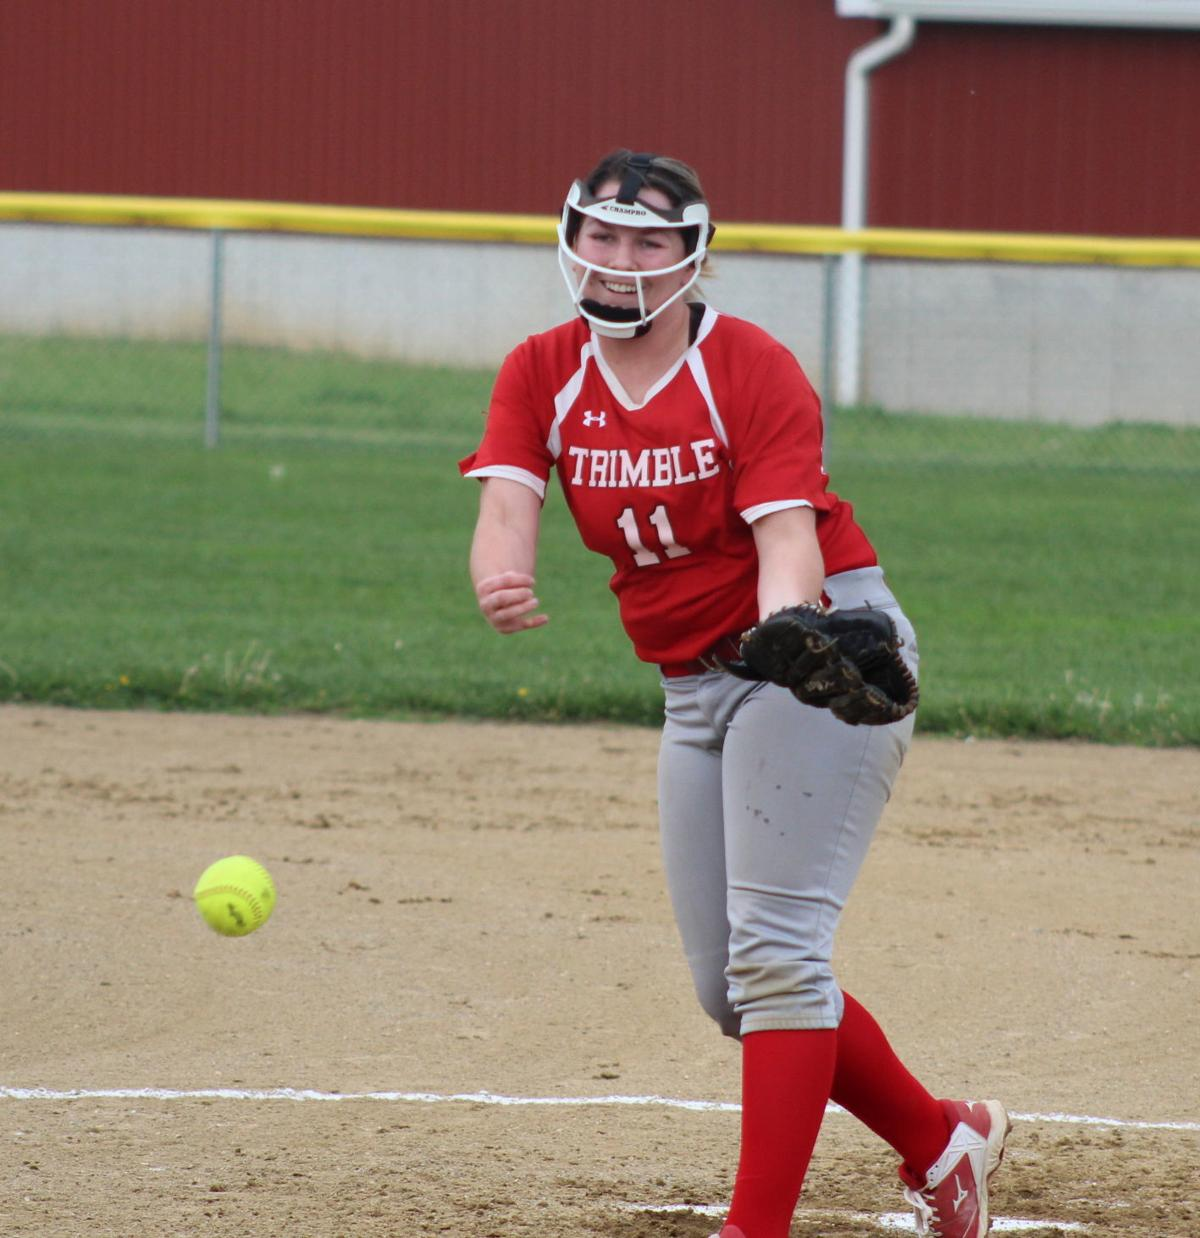 Kittle, Moore were busy leading the Tomcats